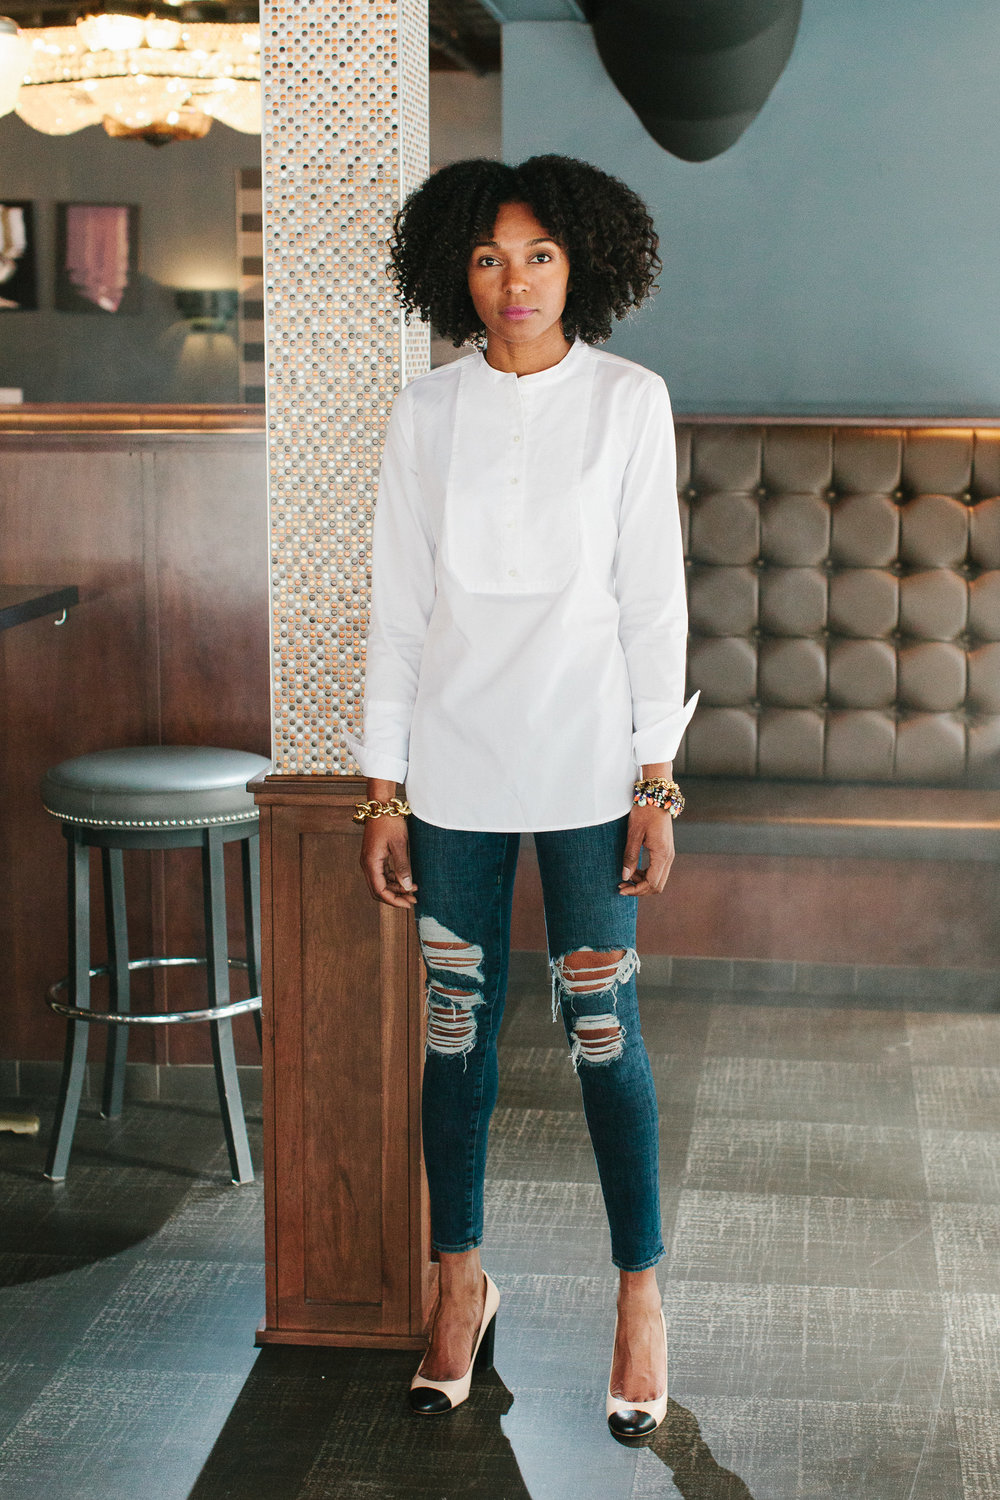 Shirt + pumps: JCrew   Denim: Frame